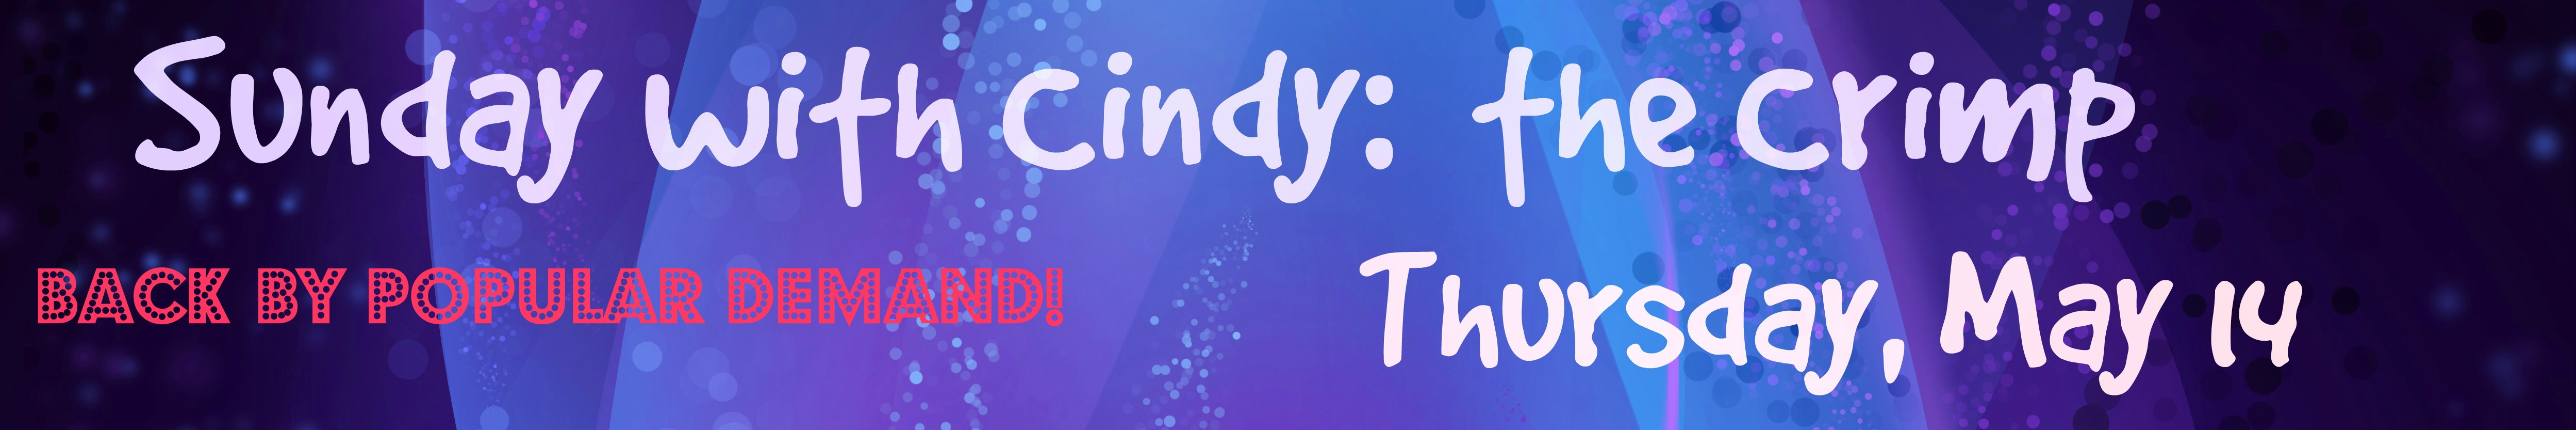 Sunday with Cindy: the Crimp, Thurs. May 14